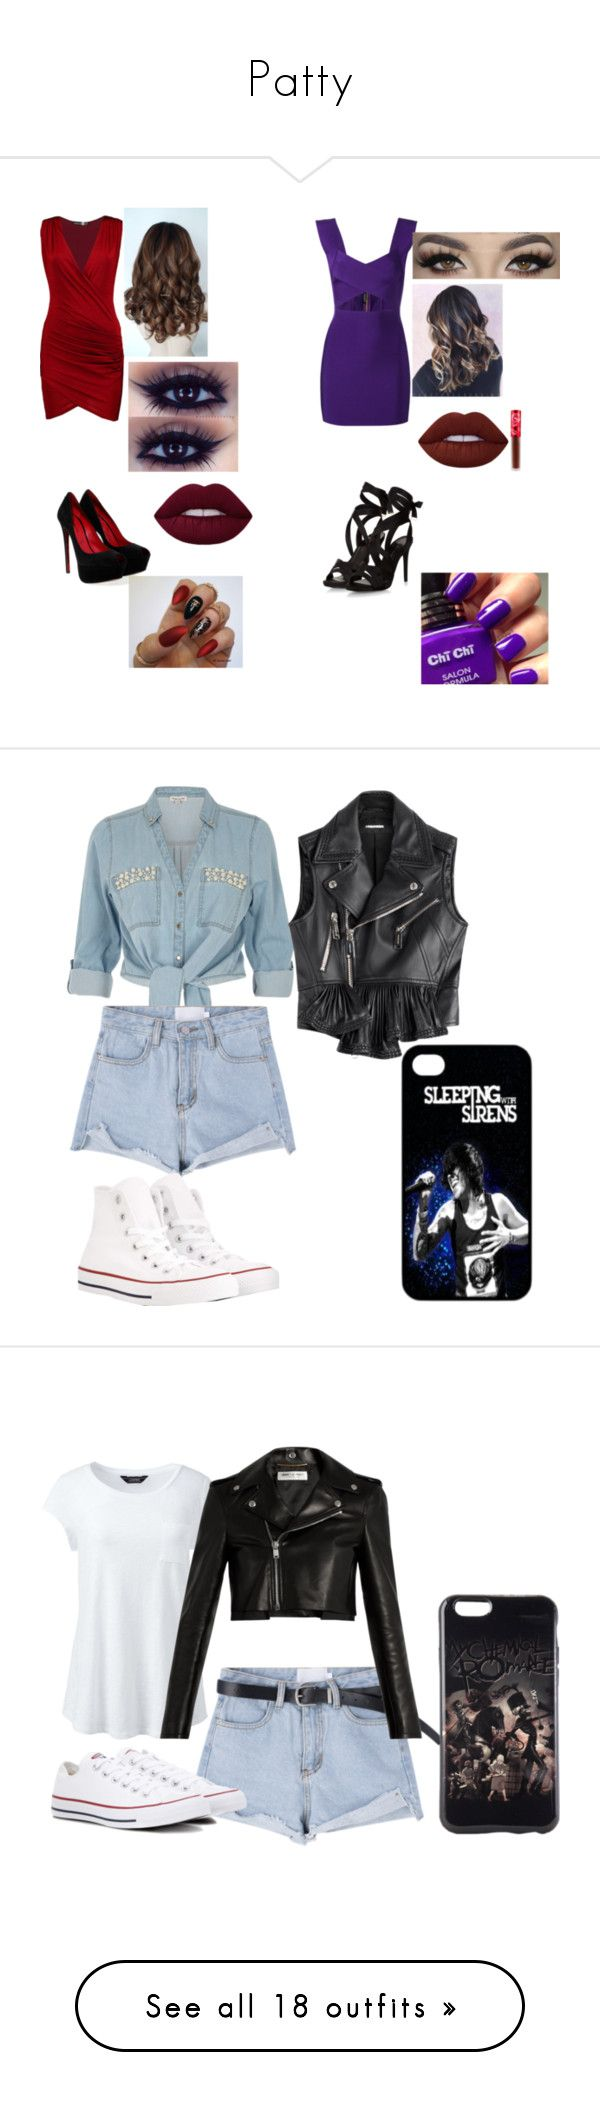 """Patty"" by elena-horror999 ❤ liked on Polyvore featuring Boohoo, Cesare Paciotti, Balmain, Lime Crime, River Island, Dsquared2, Converse, Lands' End, Yves Saint Laurent and Hot Topic"